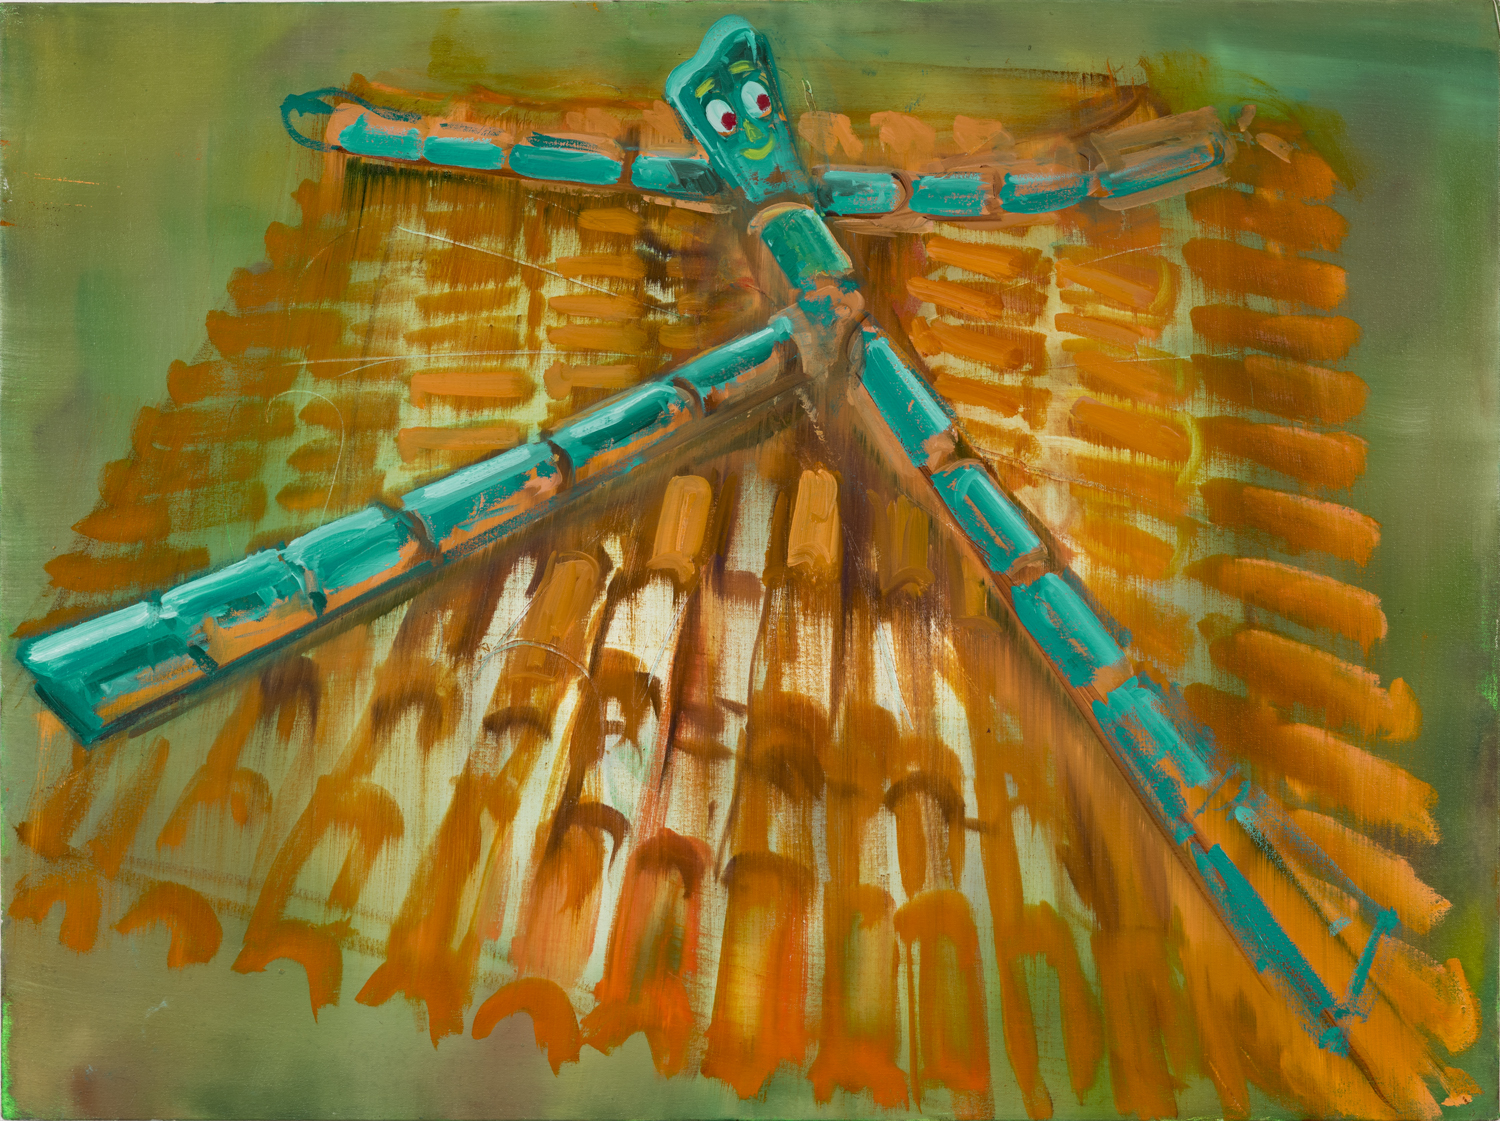 Roof with Gumby, 2016